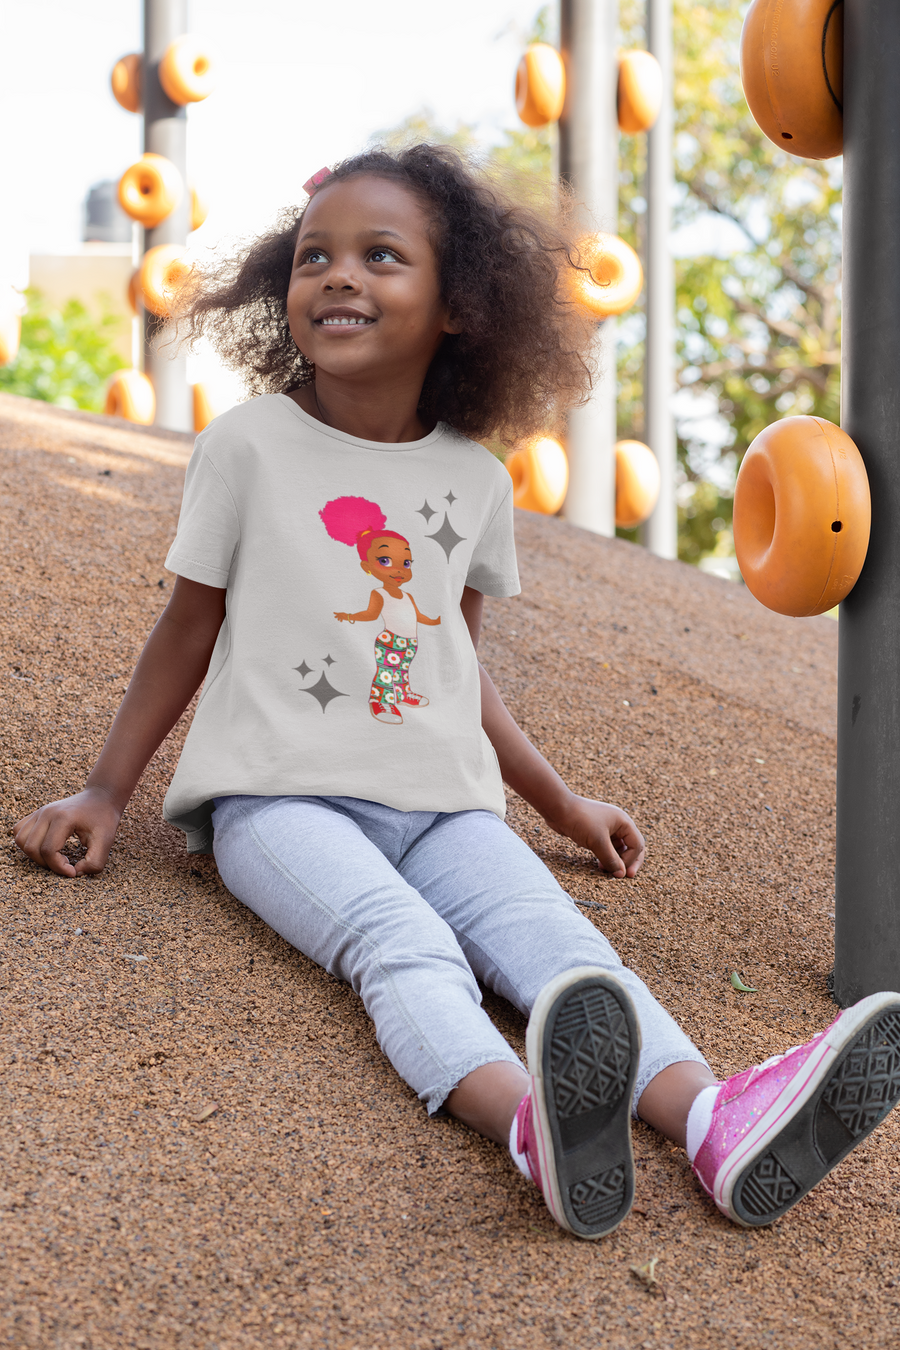 Summer: The Island Girl Toddler Classic T-shirt